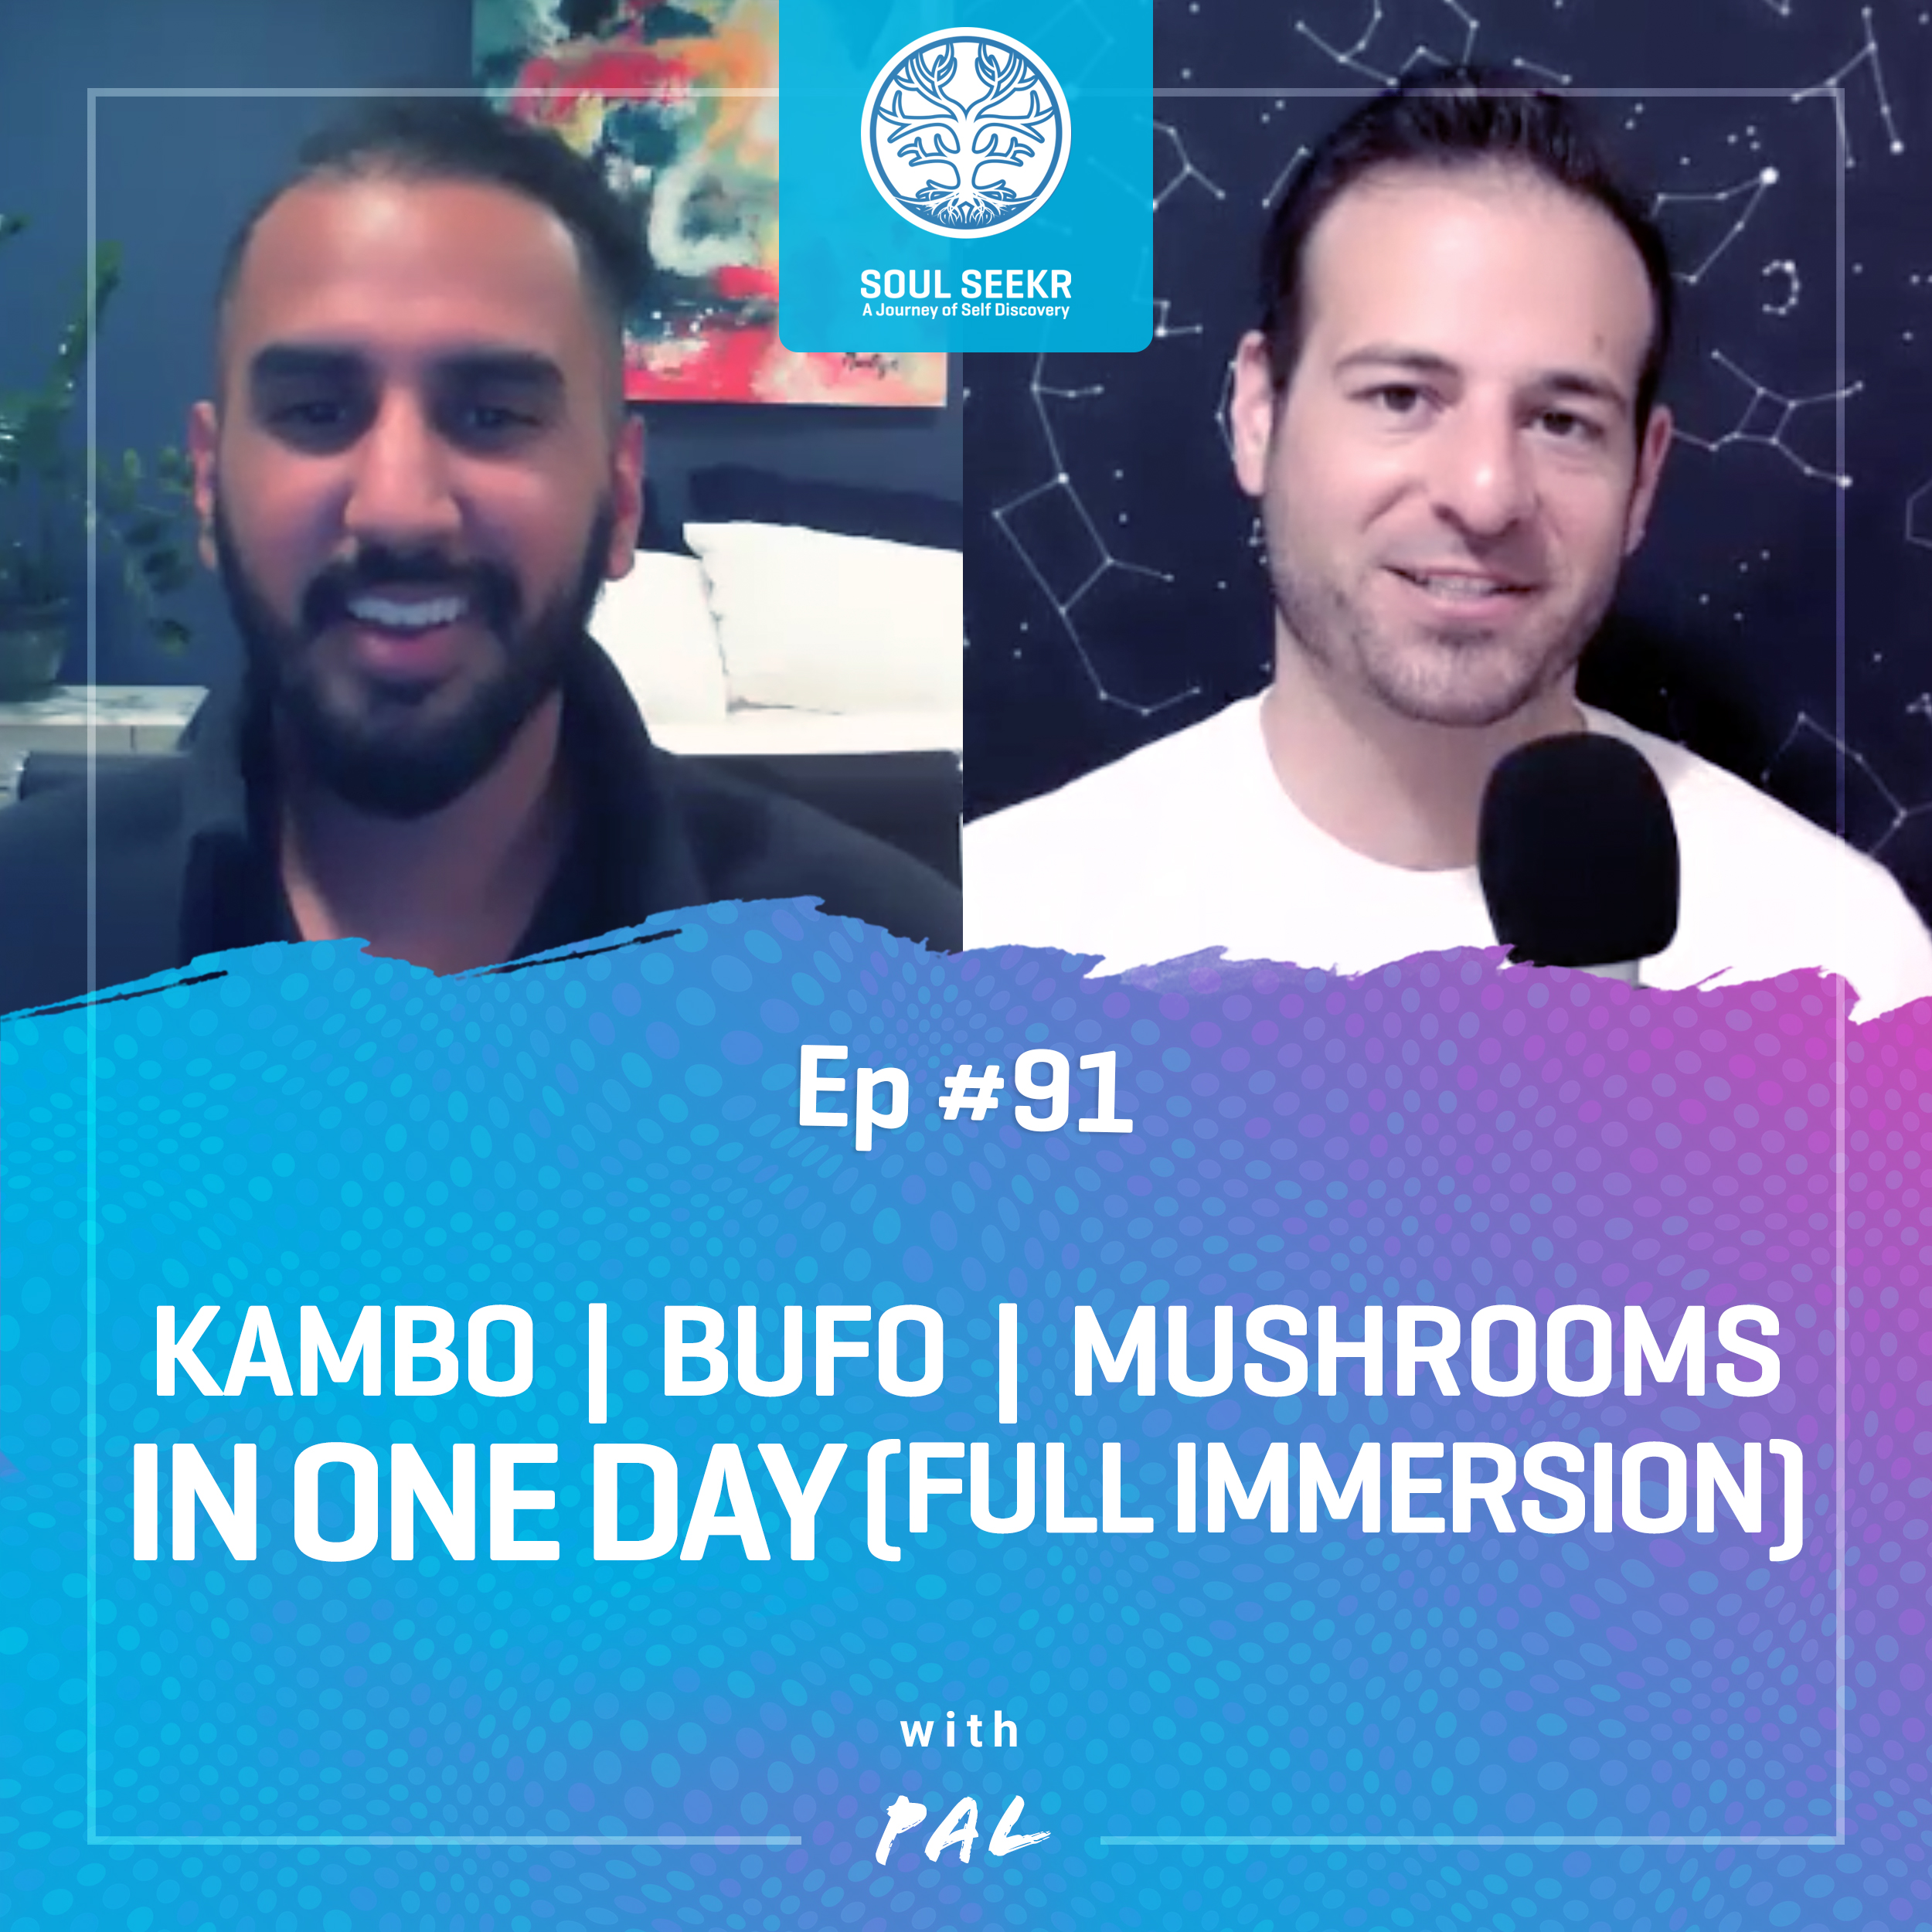 #91: Kambo   Bufo   Mushrooms in ONE DAY (Full Immersion) with Pal